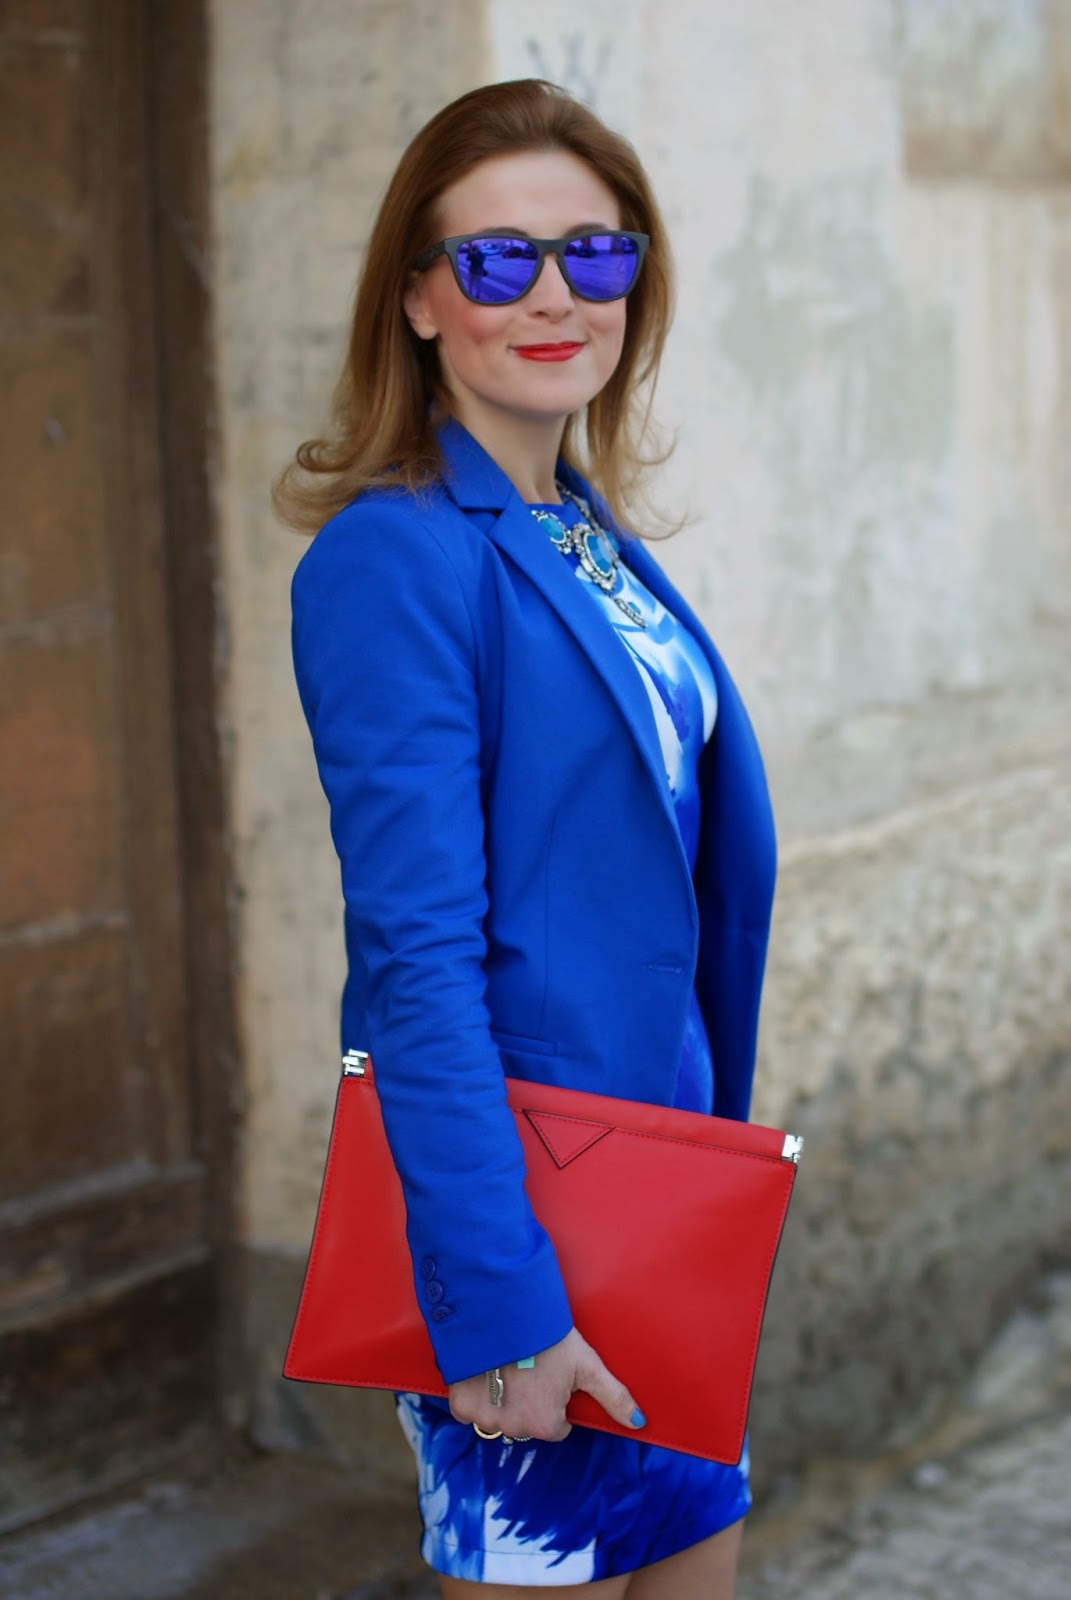 cobalt blue zara blazer, red zara clutch, Oakley blue mirror sunglasses, Fashion and Cookies, fashion blogger